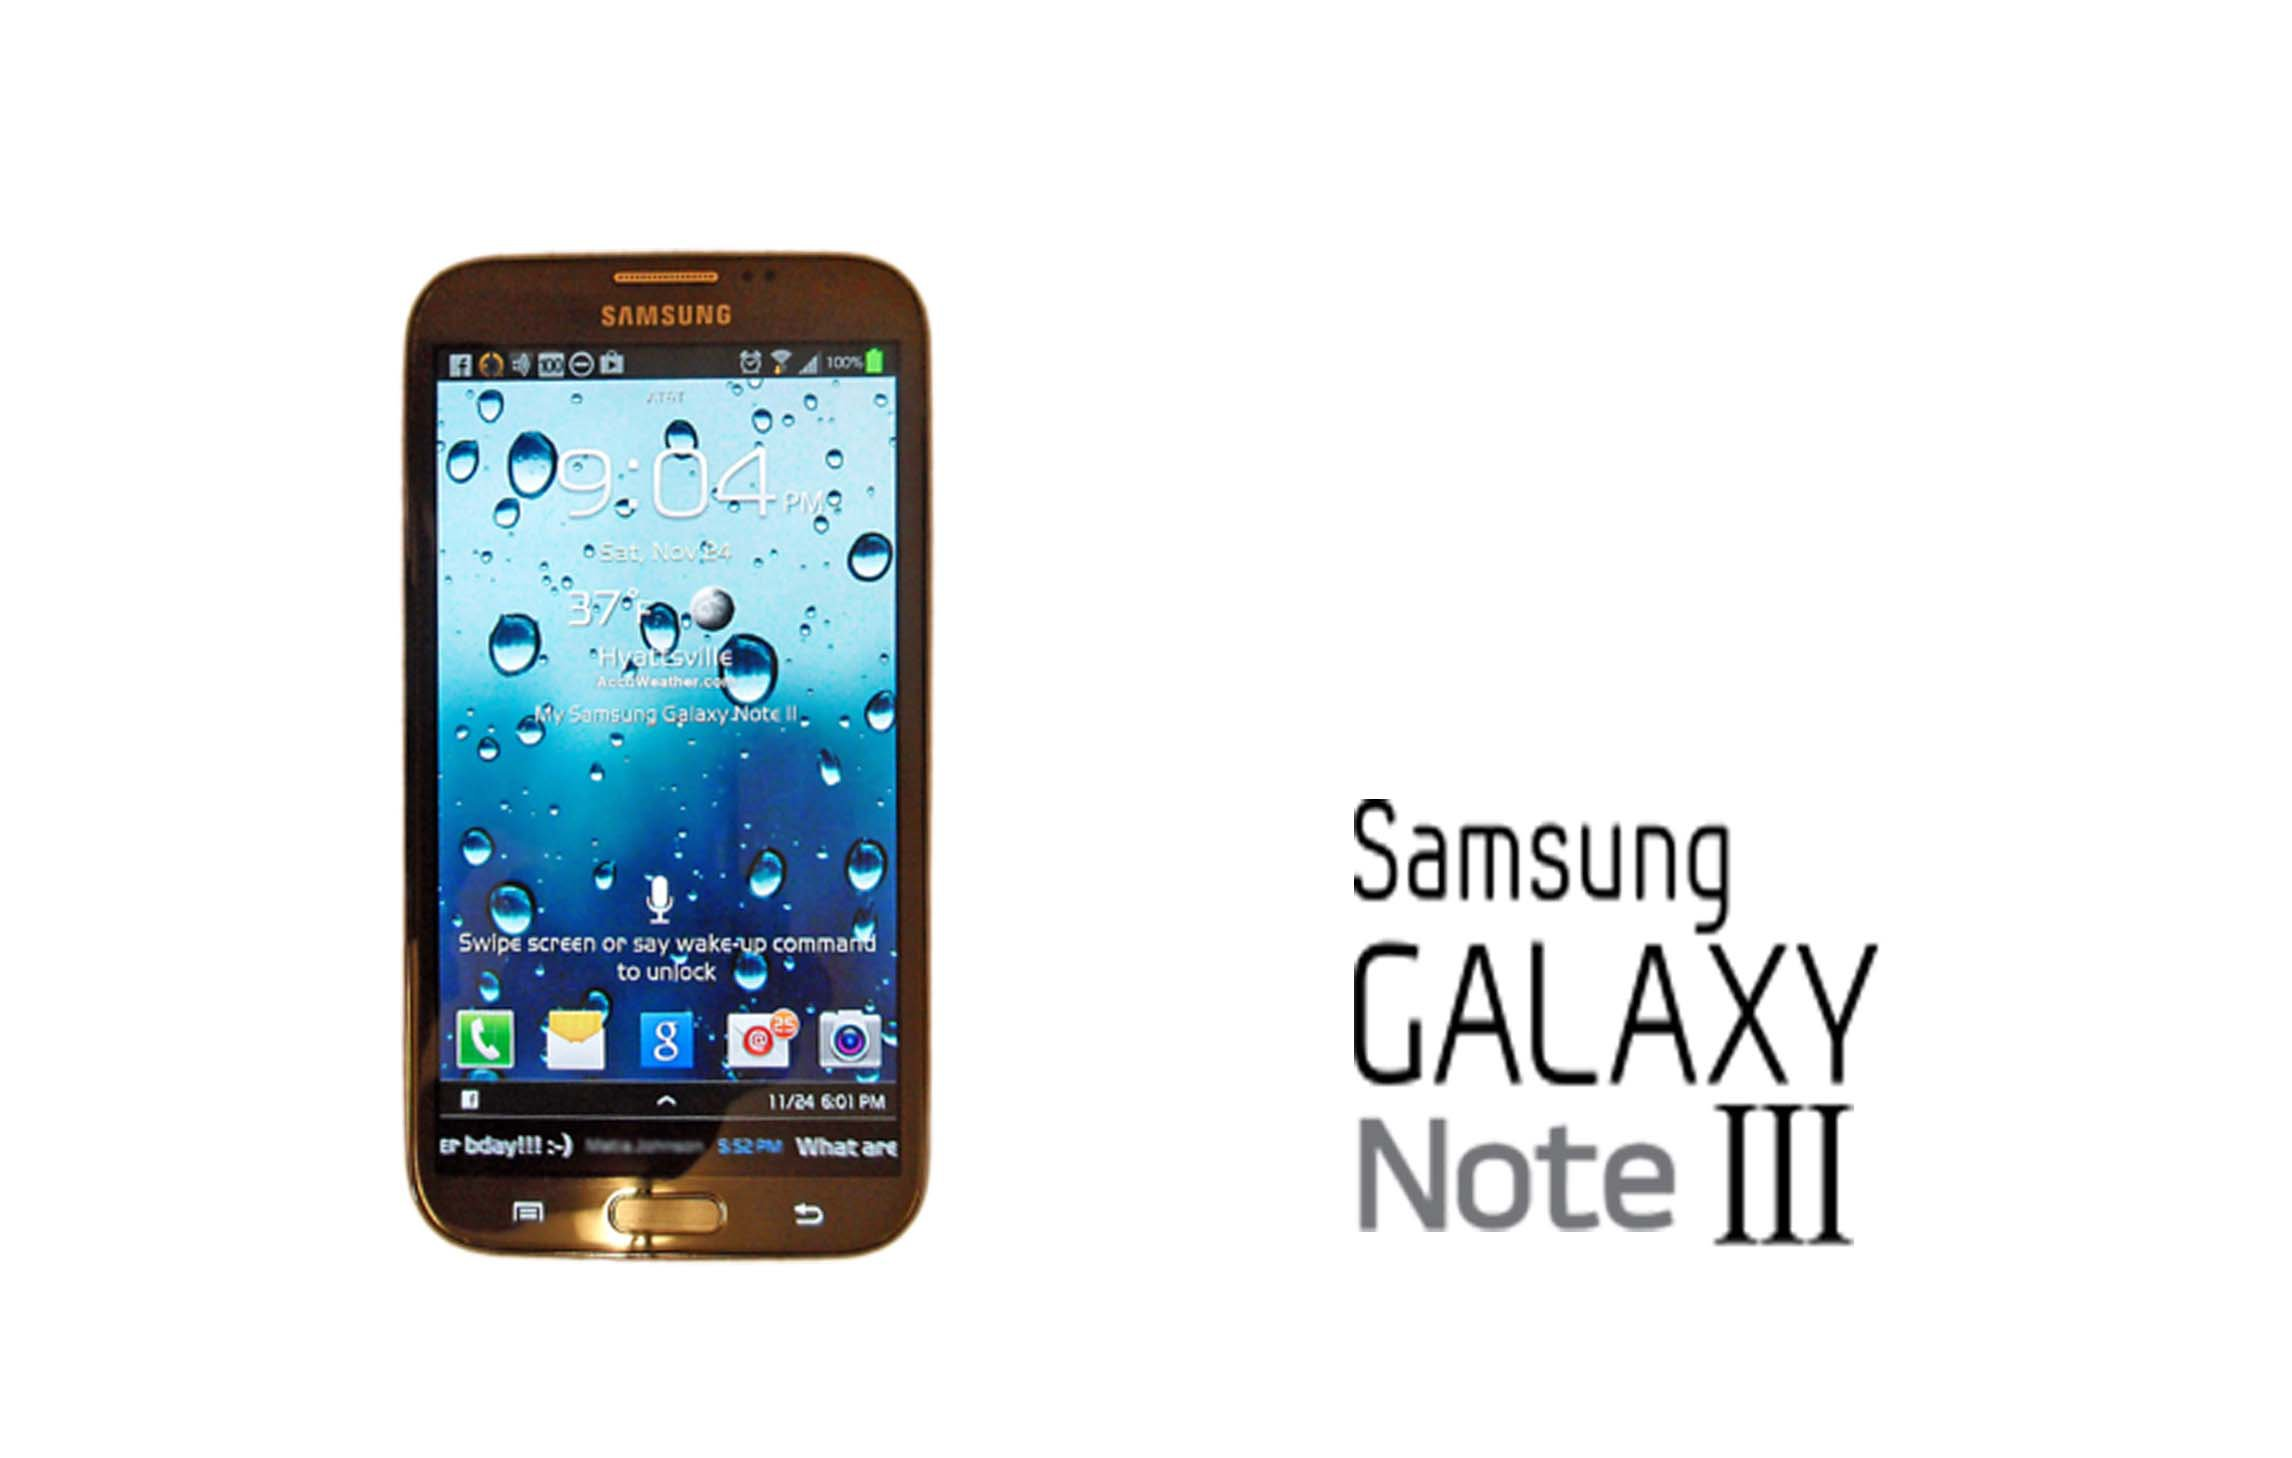 Samsung Glaxay Note III will have an unbreakable display.